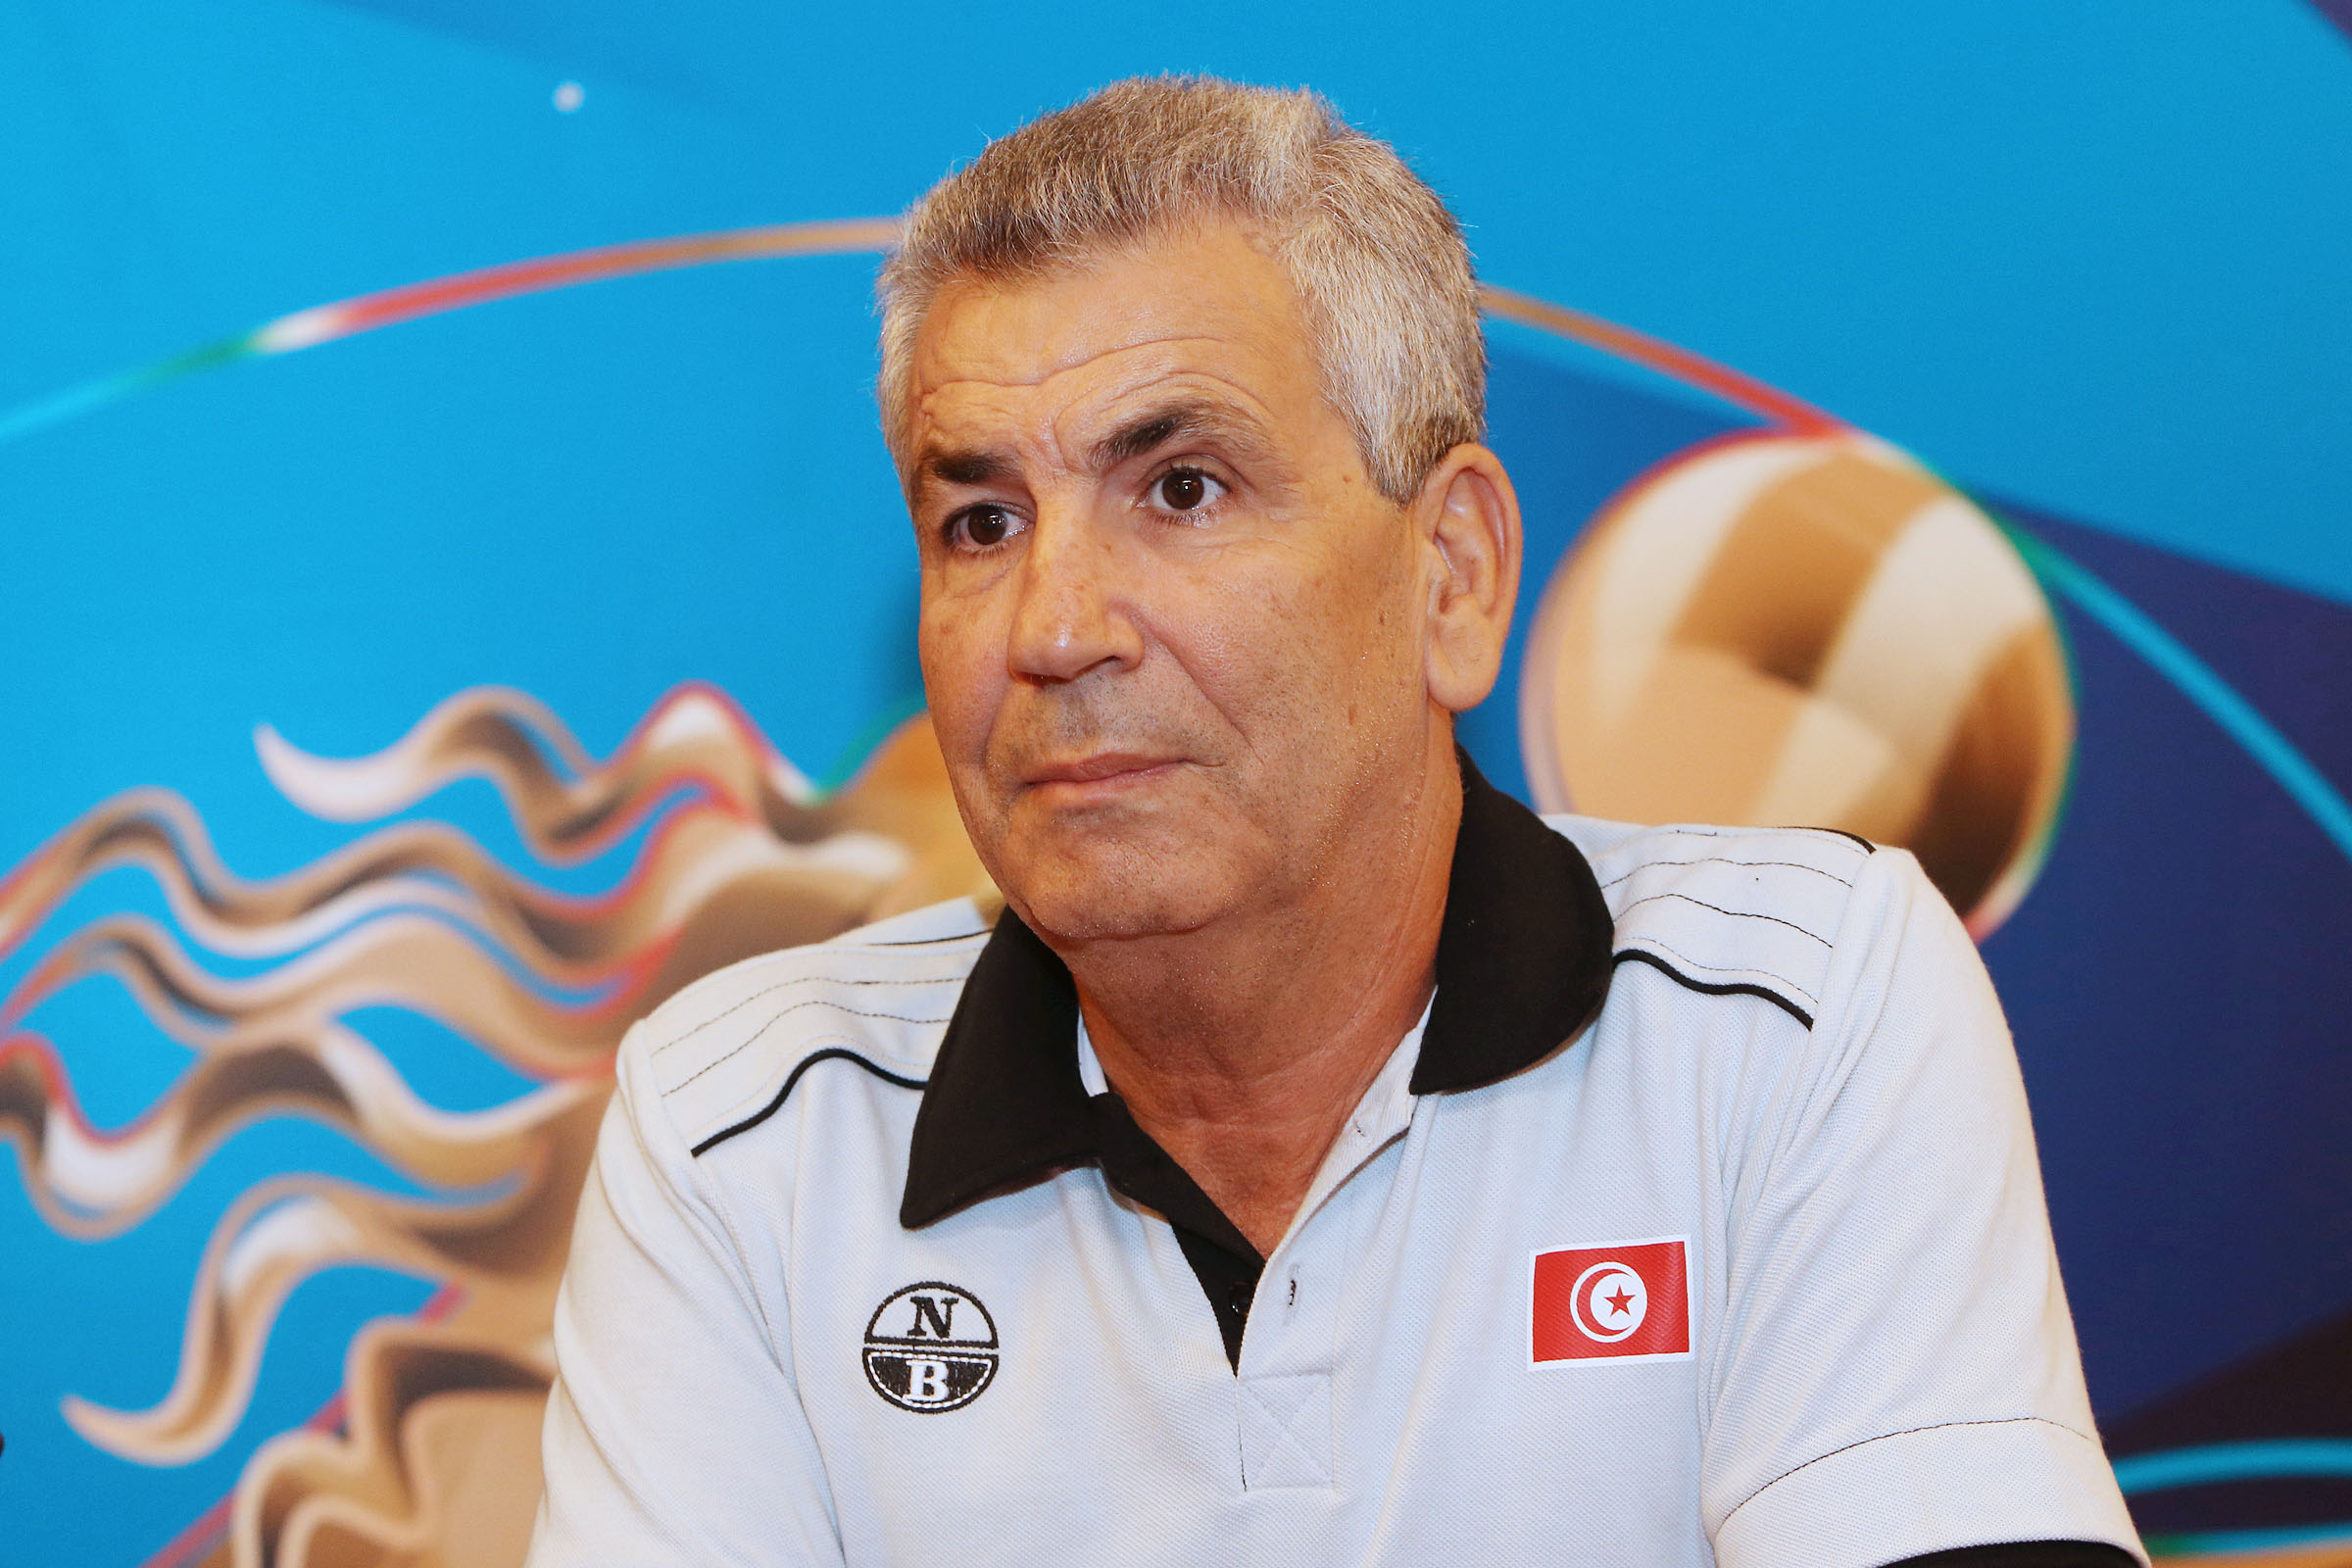 Mohamed Messelmani